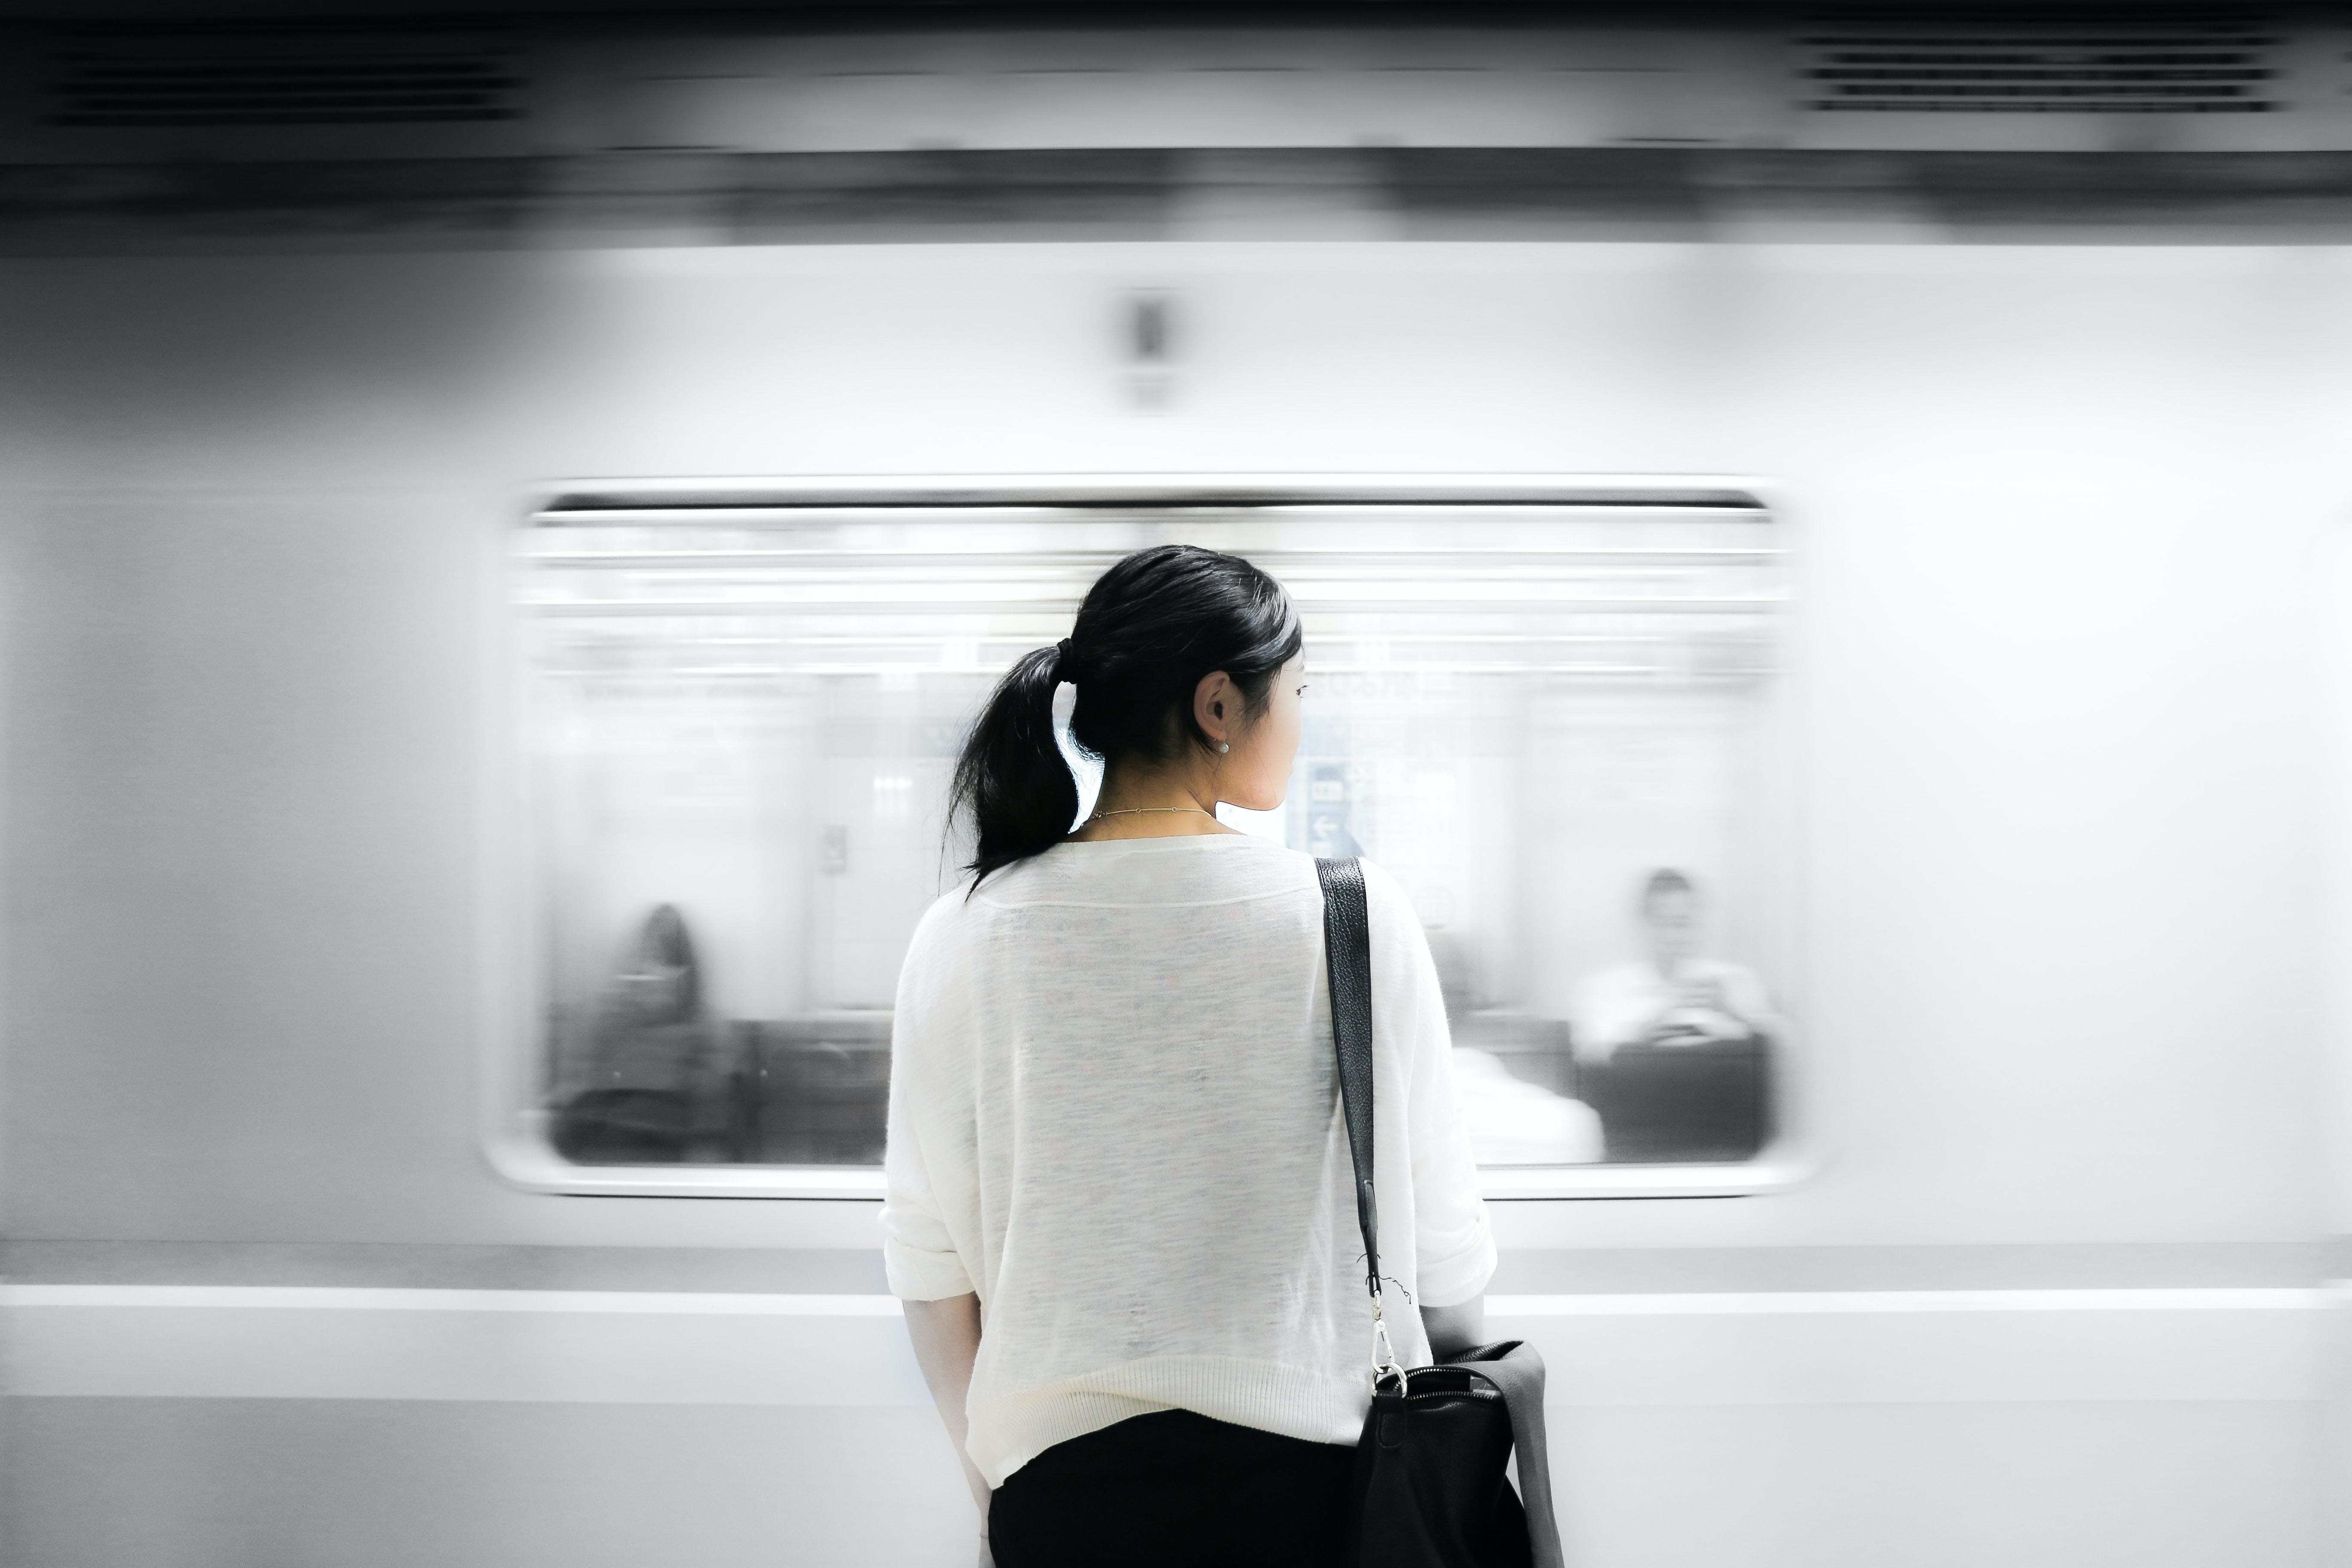 Japanese women are still under-represented at political level and the boardroom.